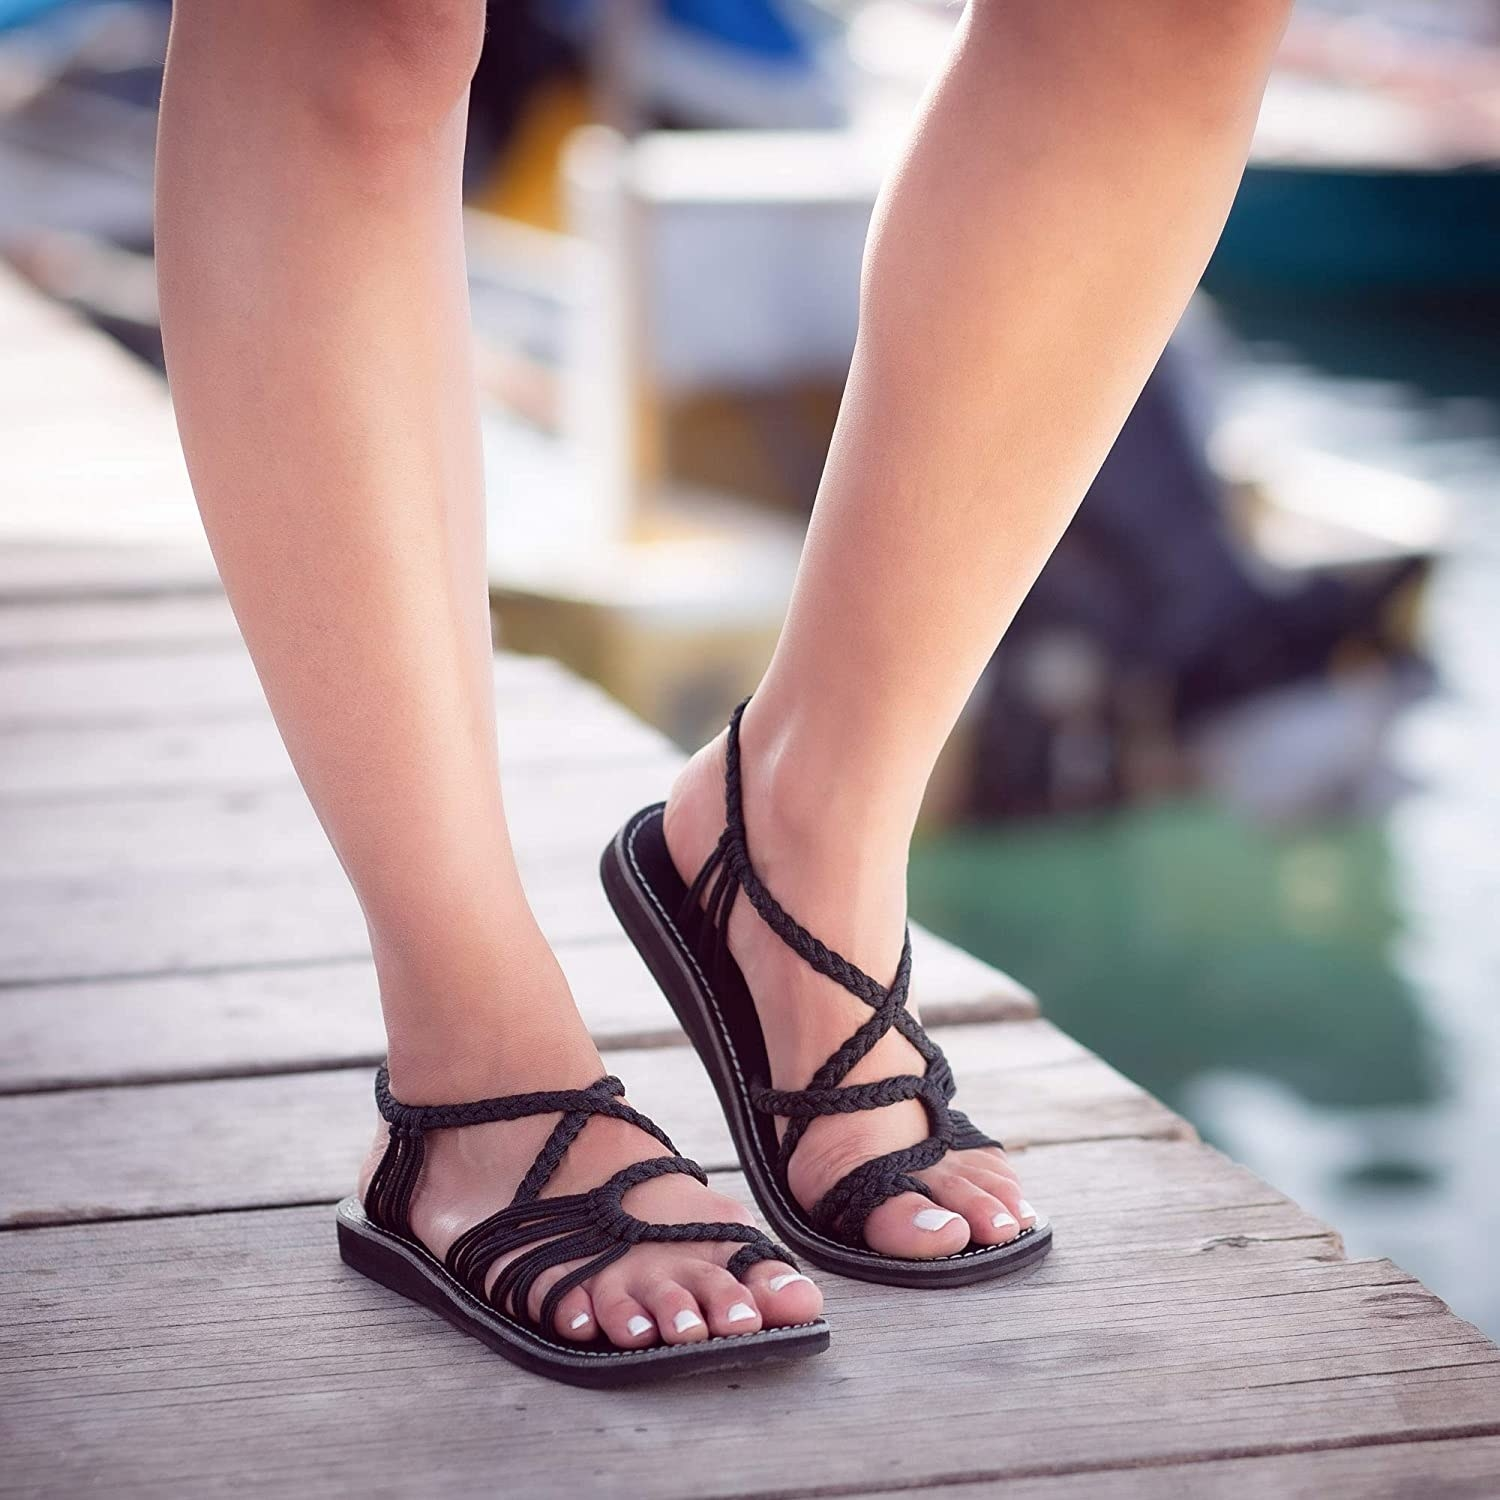 Model wearing the sandals with braided straps across the top and around the heel in black